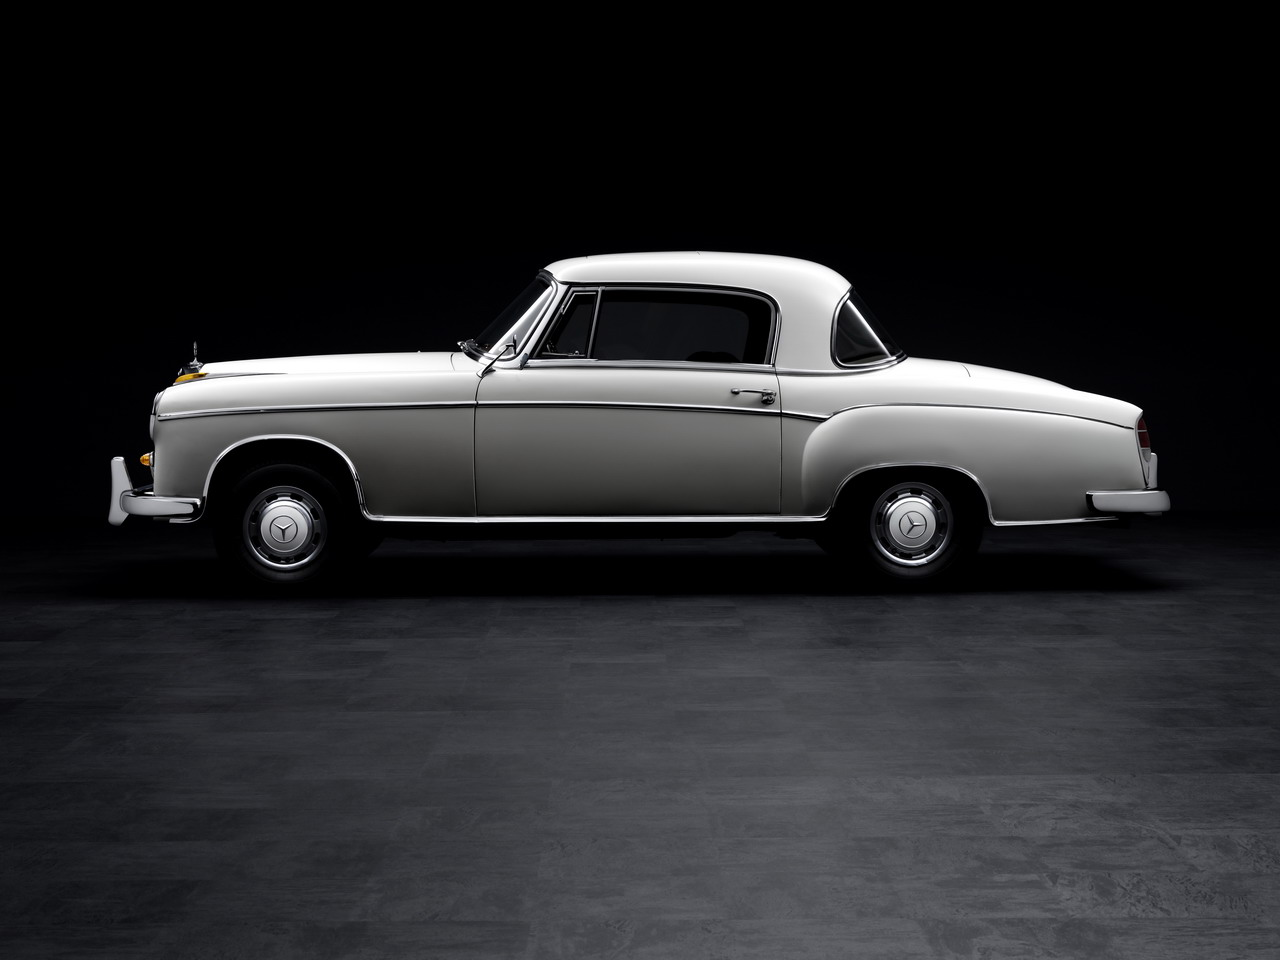 mercedes benz 220 s coup technical details history. Black Bedroom Furniture Sets. Home Design Ideas